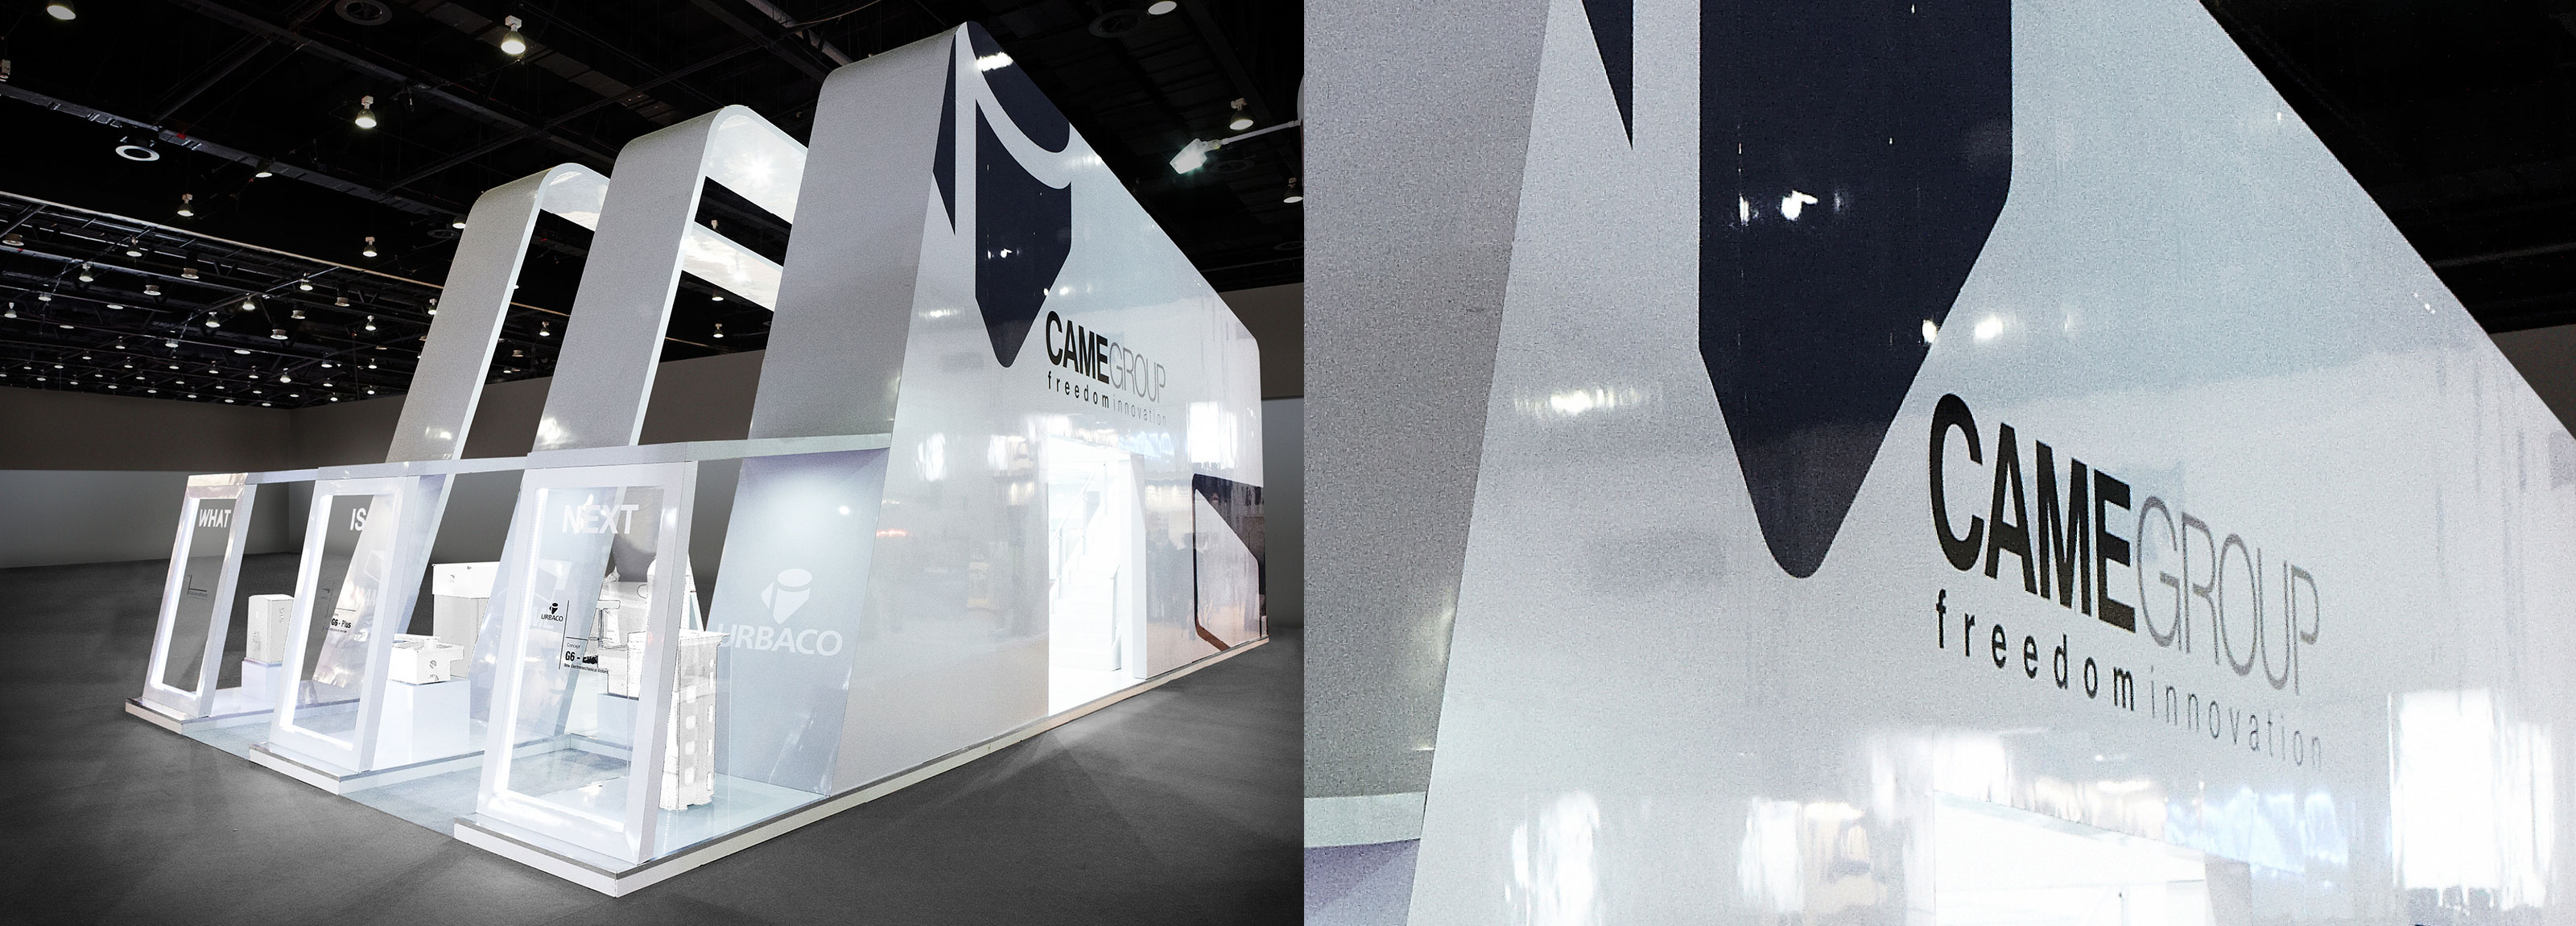 An aerodynamic booth signed by Hangar Design Group for Came, the Italian company leader in the automation systems industry.